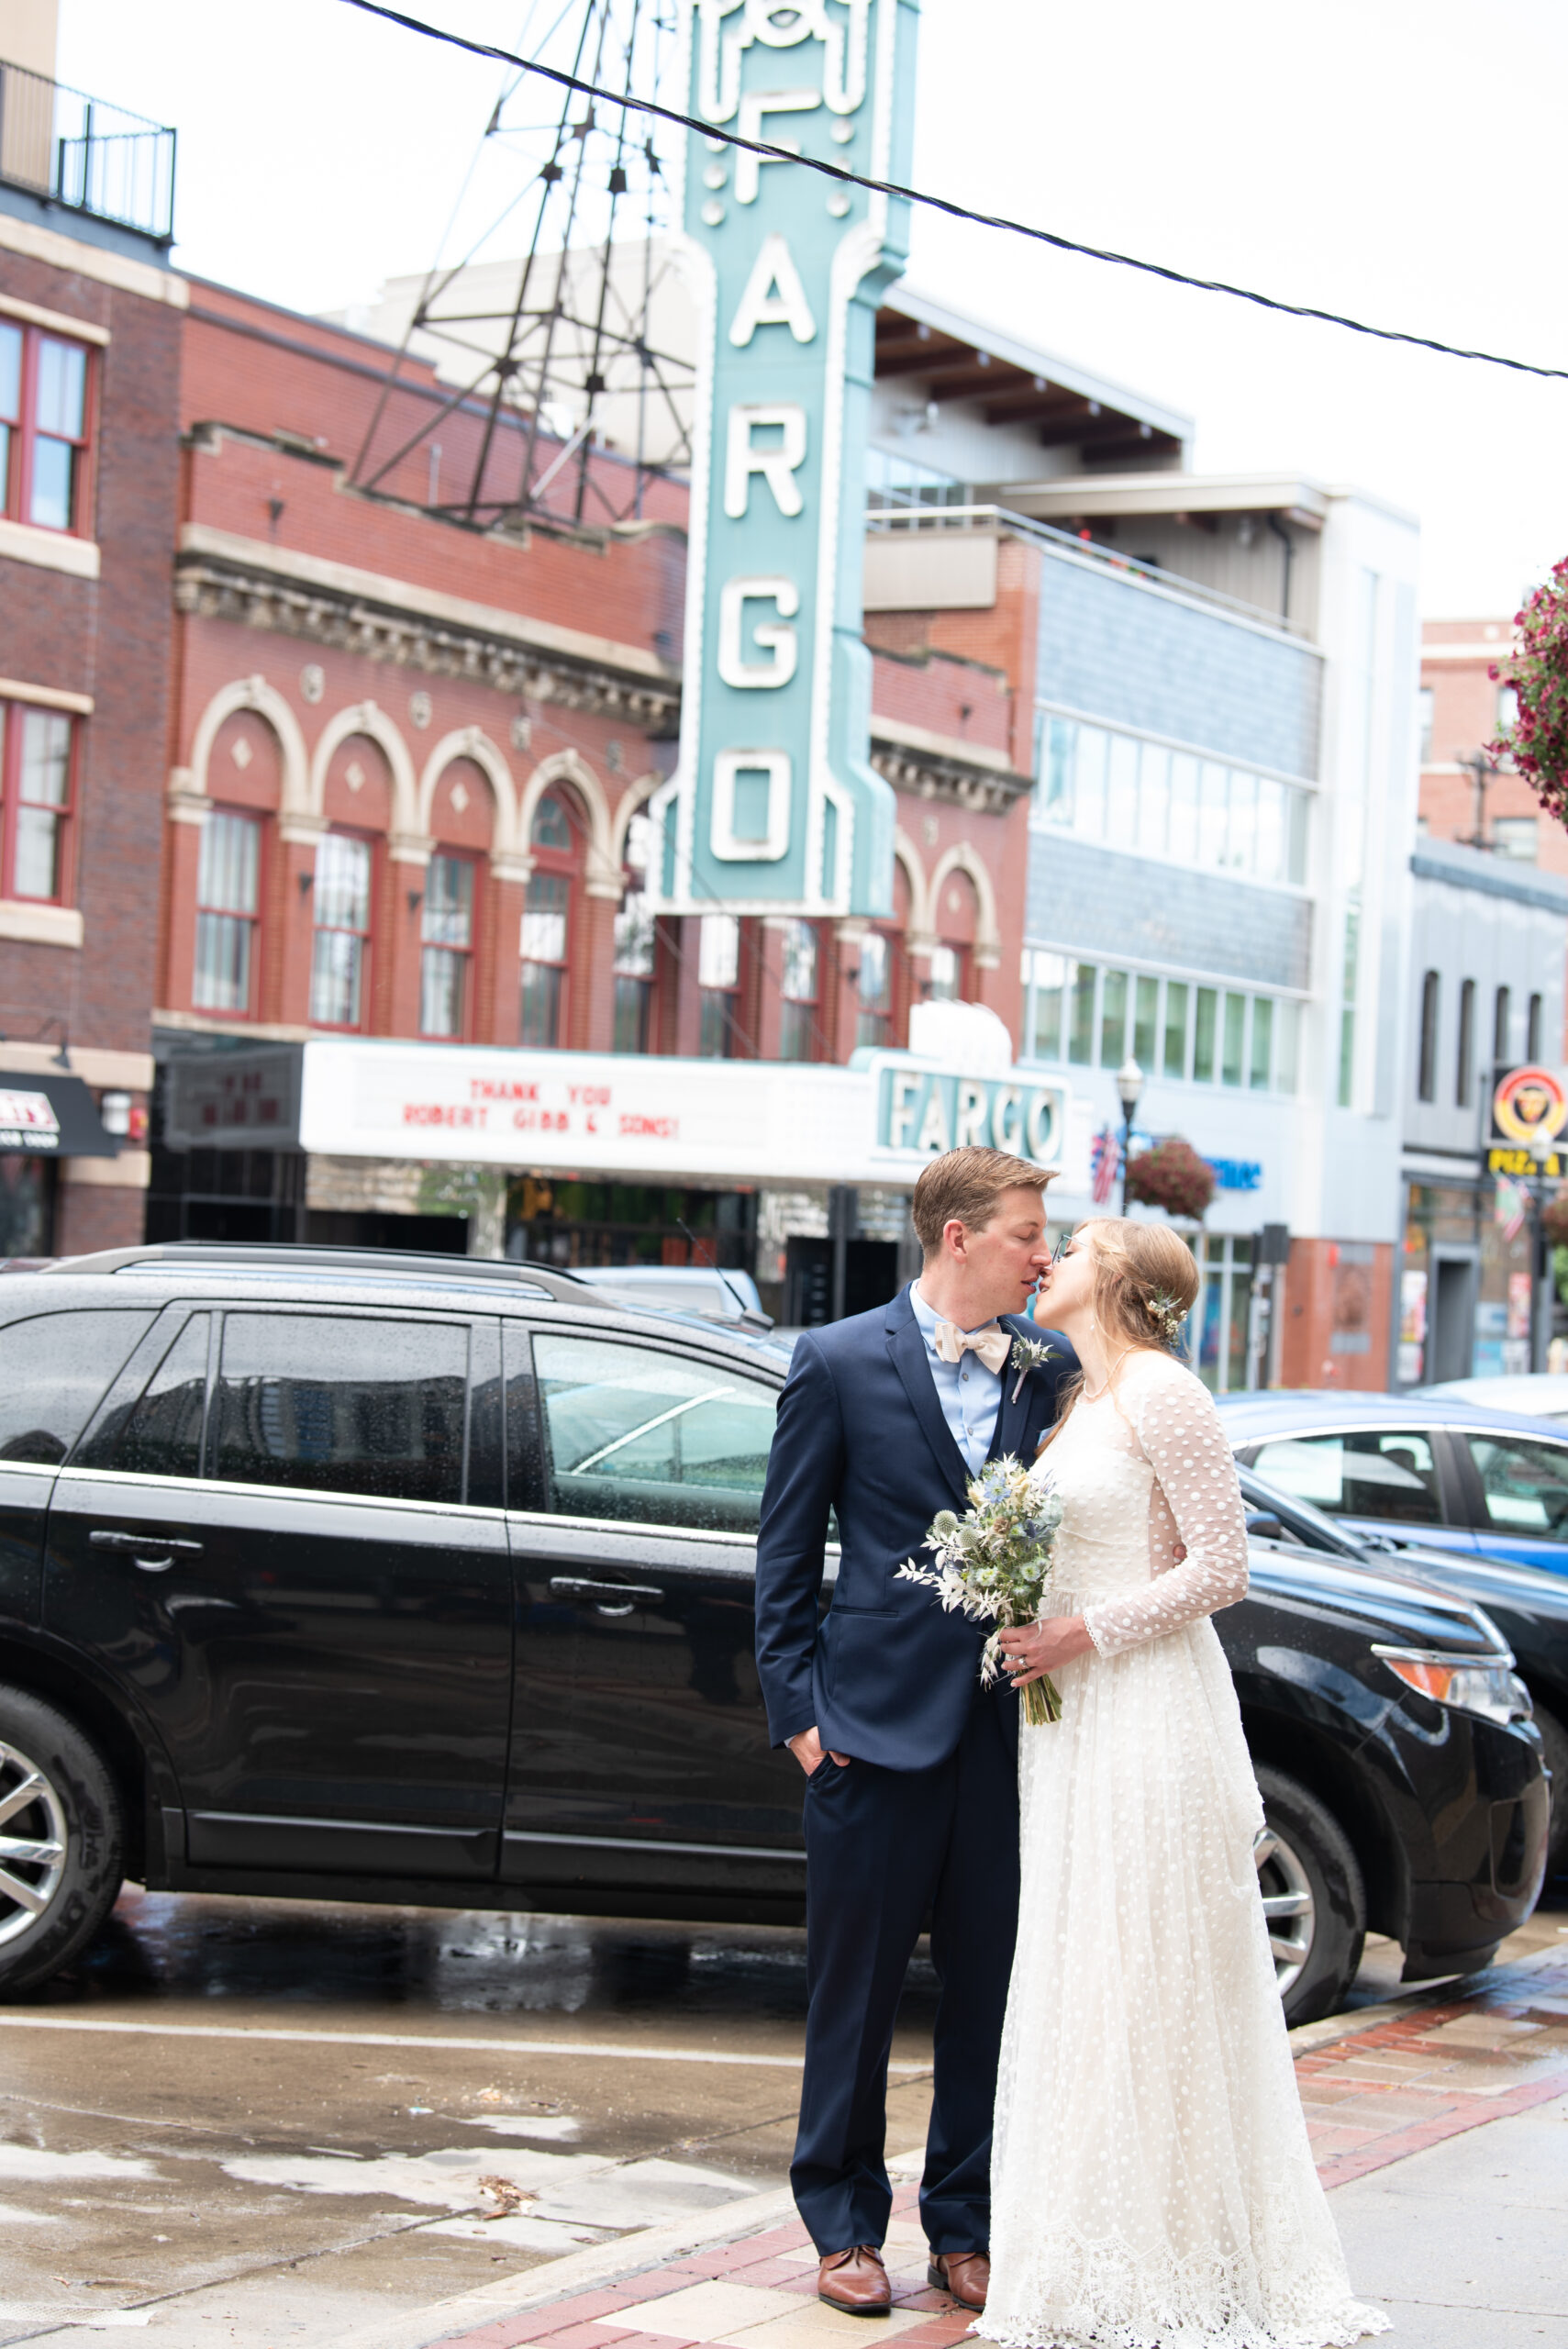 DSC 5832 scaled - Best Places to Take Engagement Photos in Fargo North Dakota